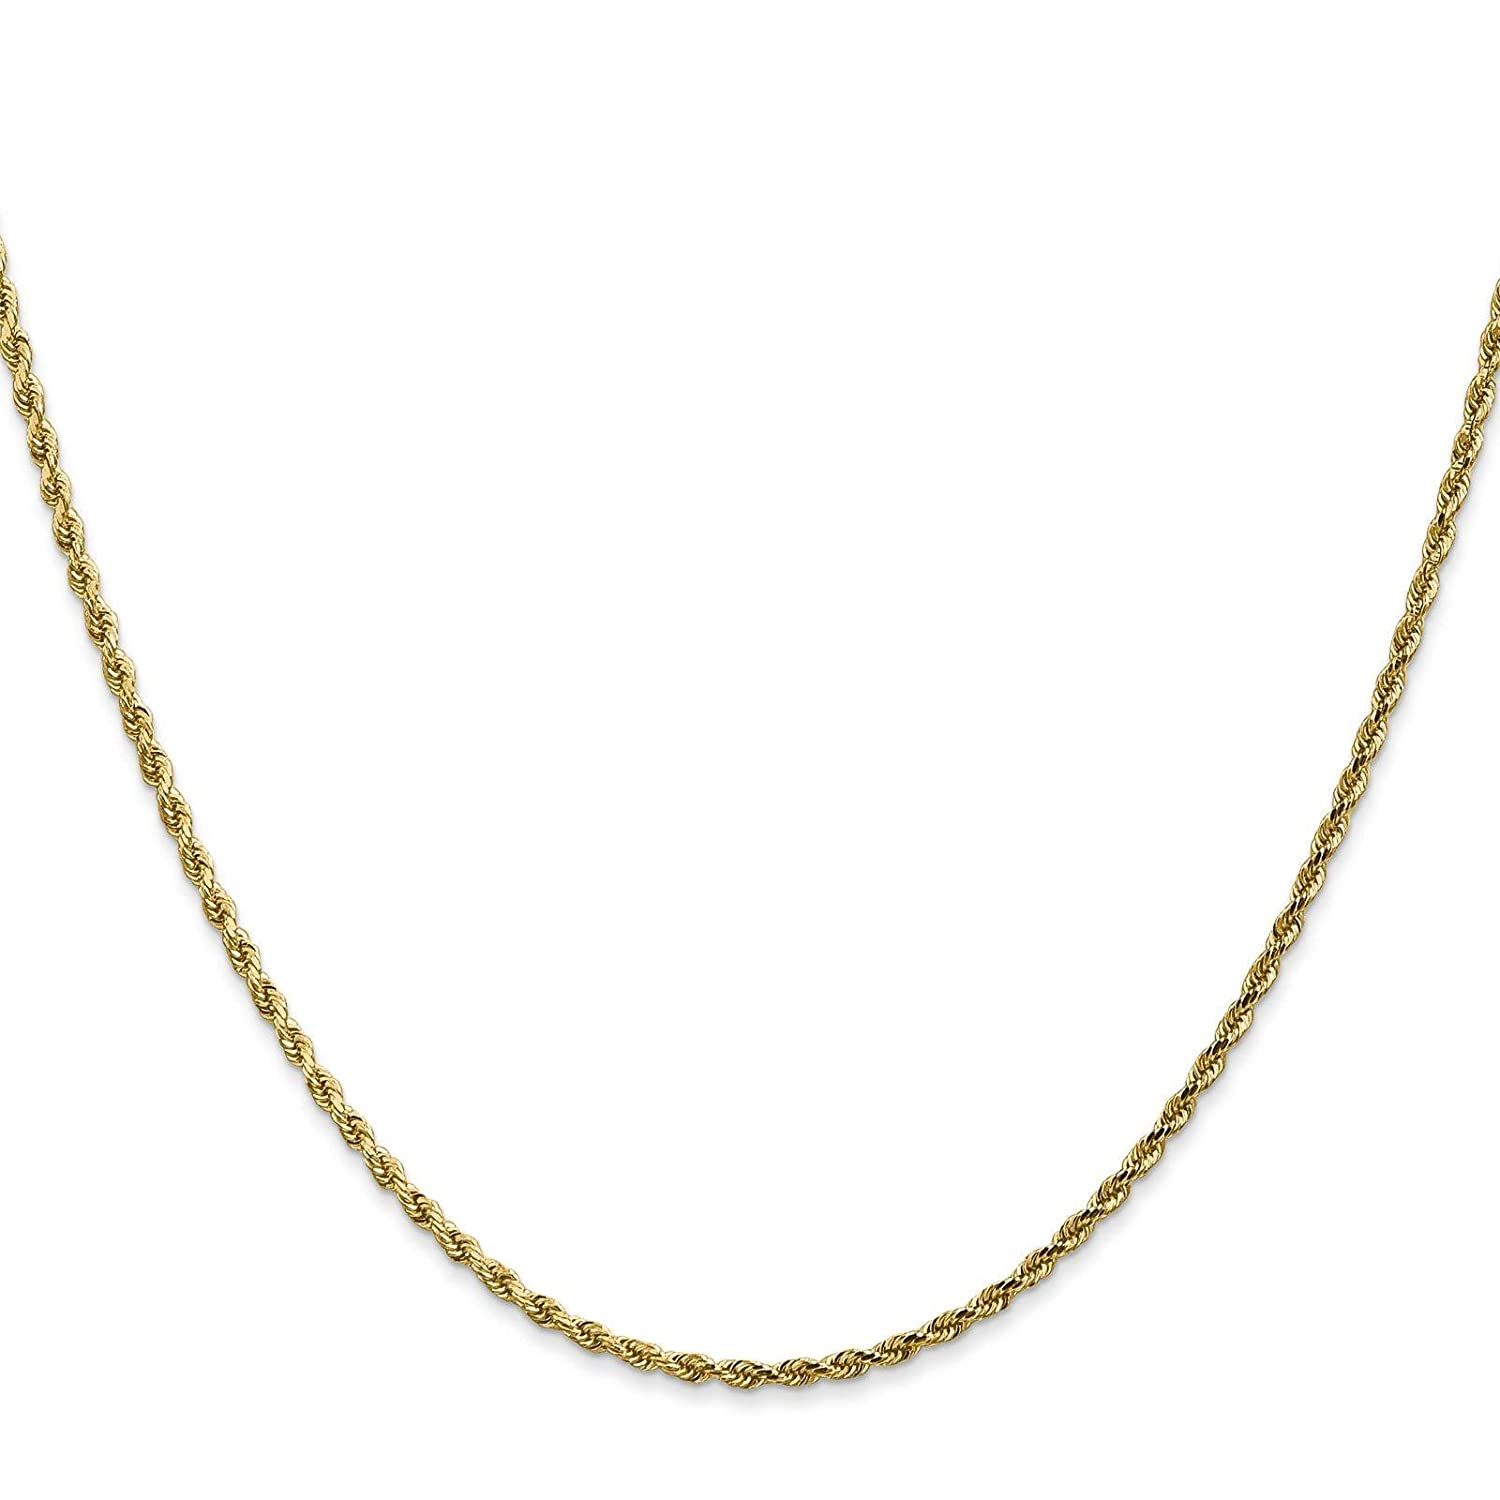 14k Yellow Gold 1.5mm Polished /& Diamond-cut Rope Chain Necklace Bracelet Anklet 6-36